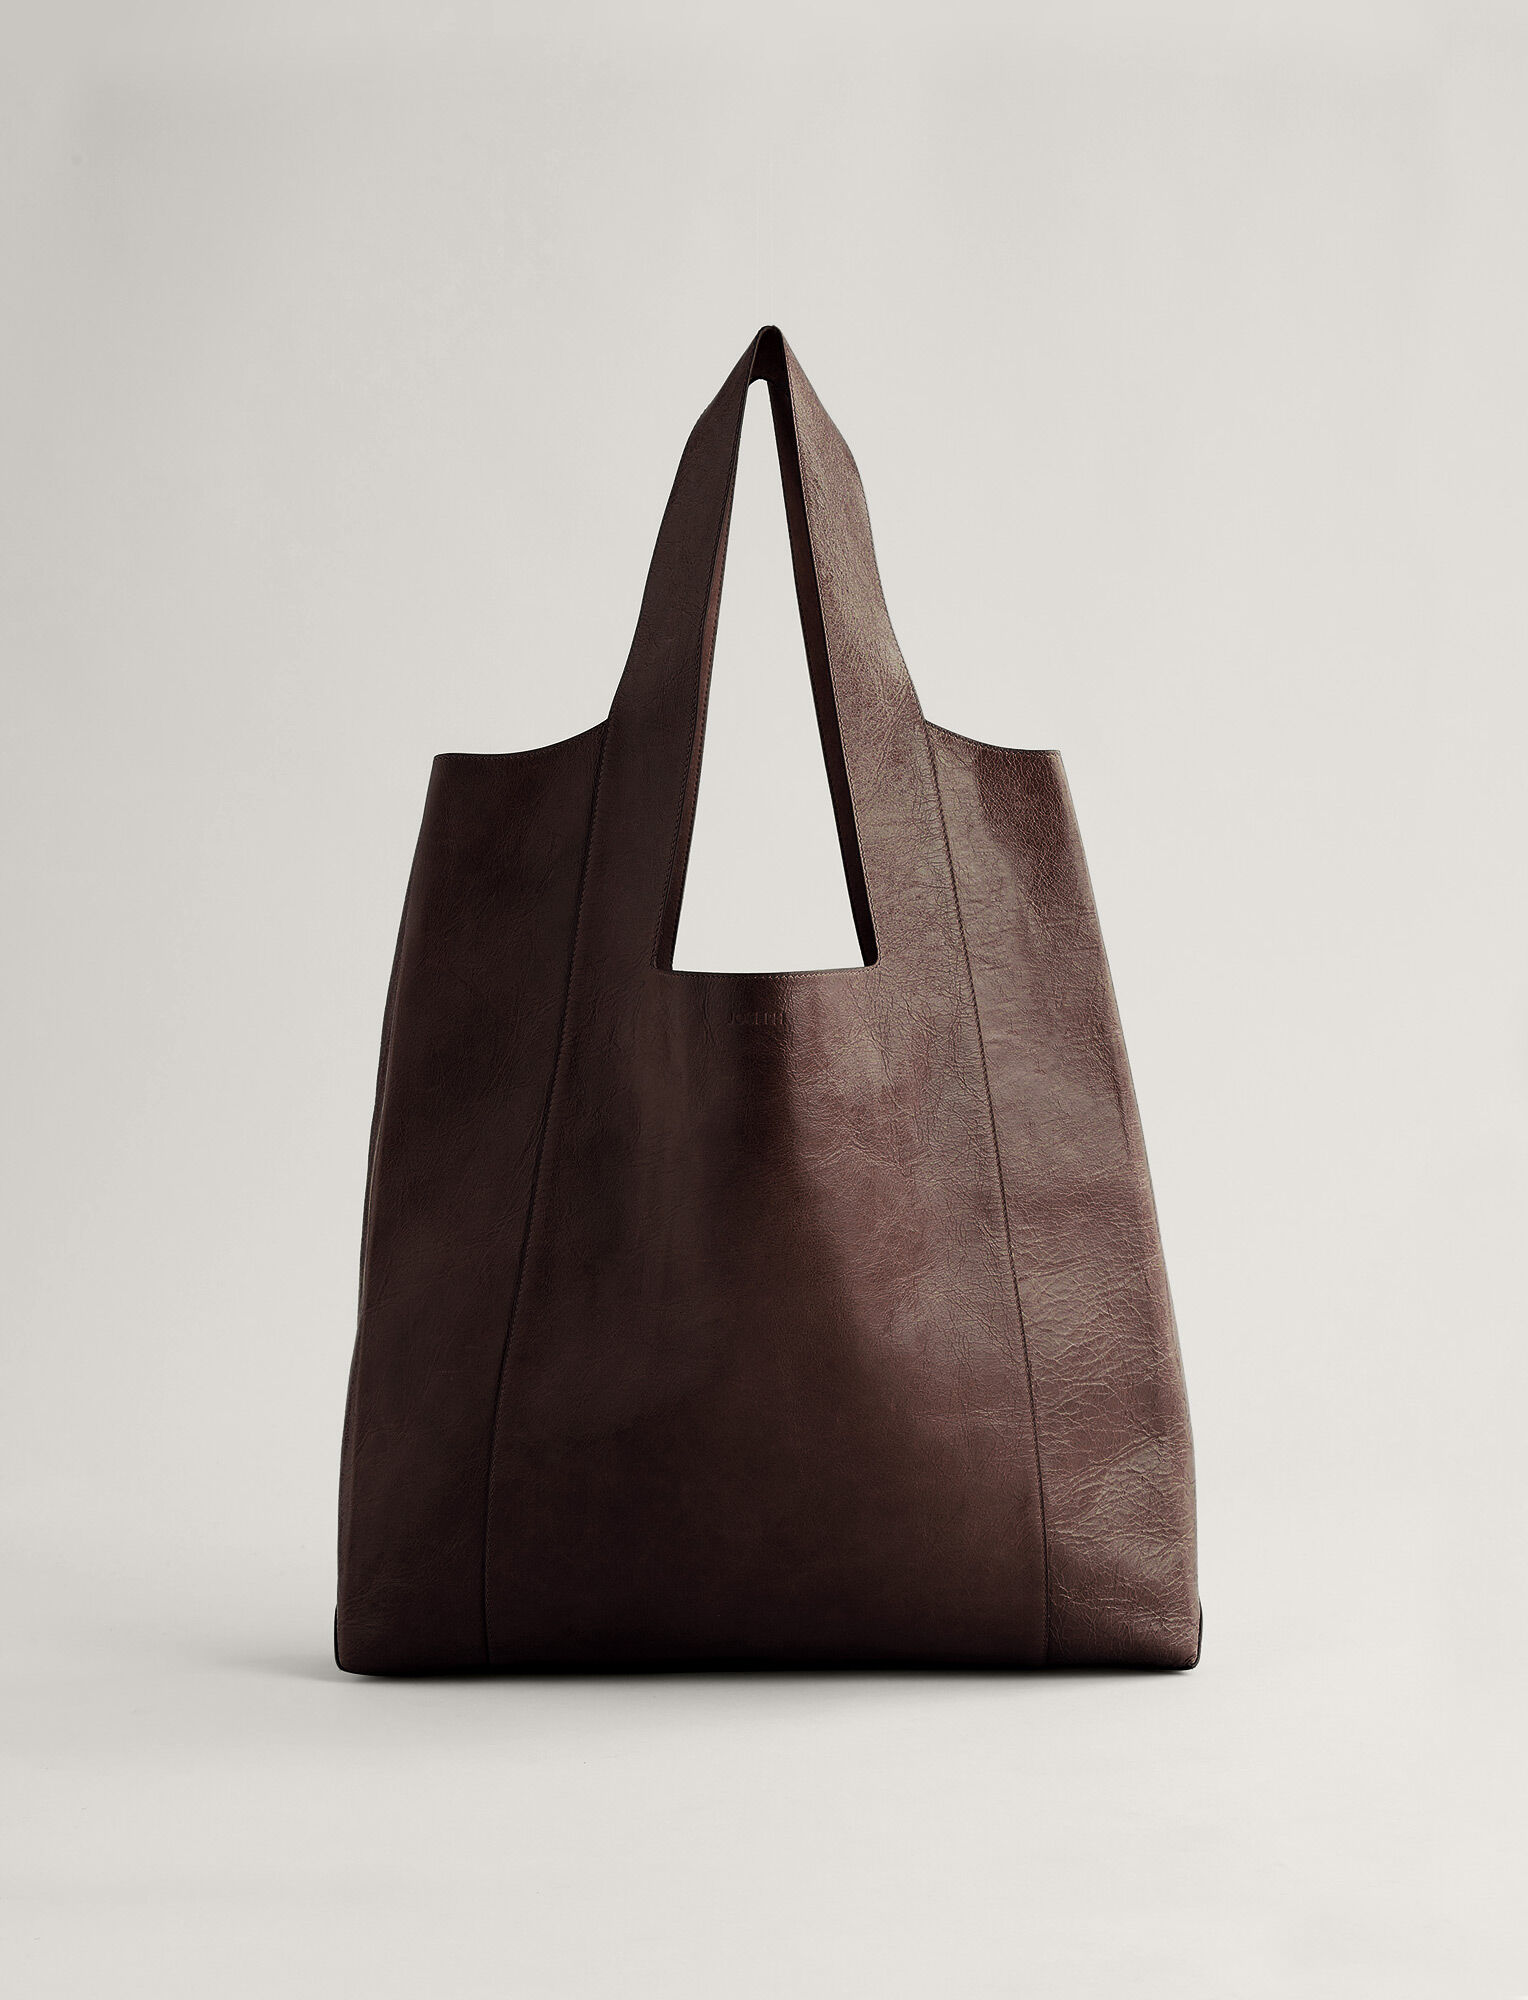 Joseph, Westbourne Leather Bag, in MAHOGANY